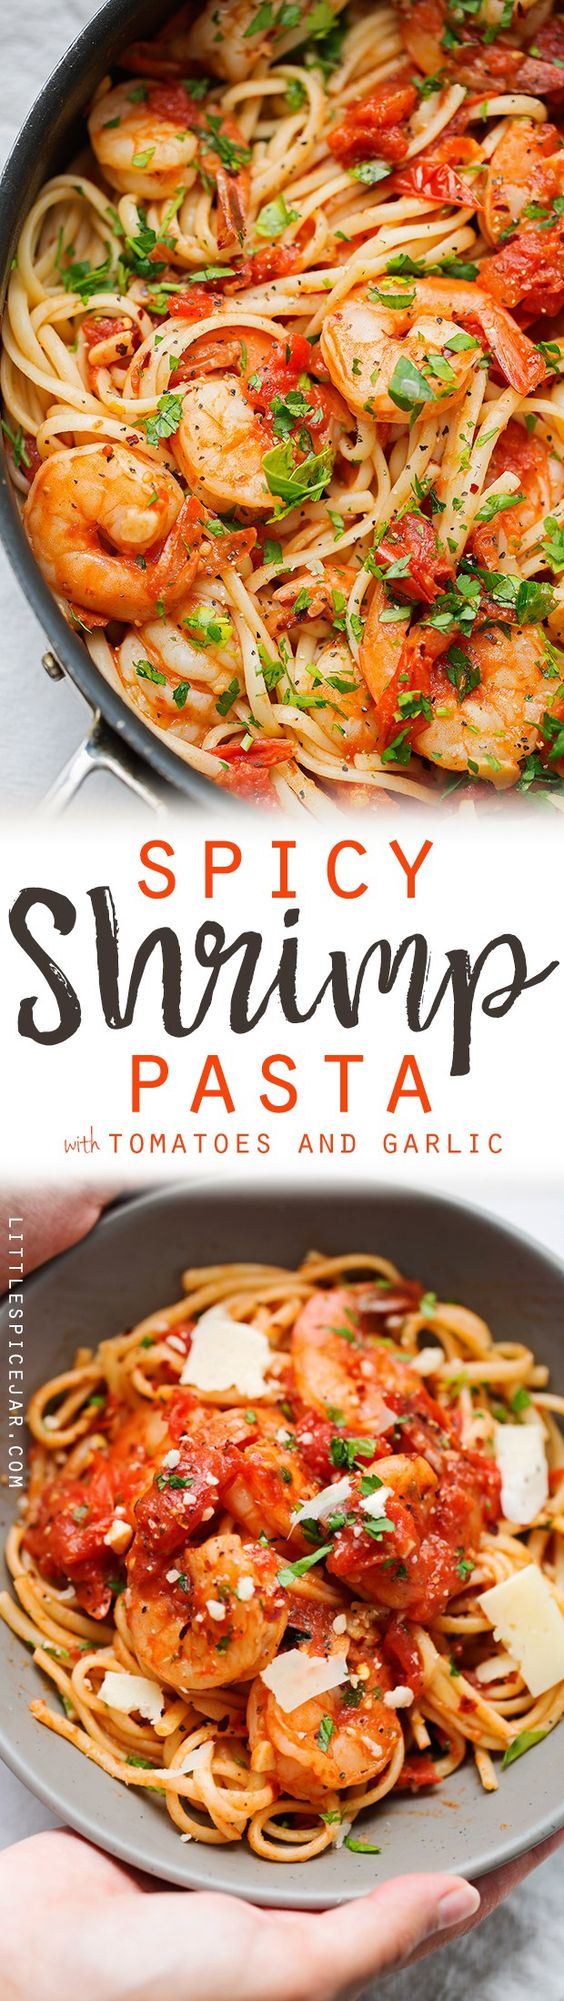 Spicy Shrimp Pasta with Tomatoes and Garlic